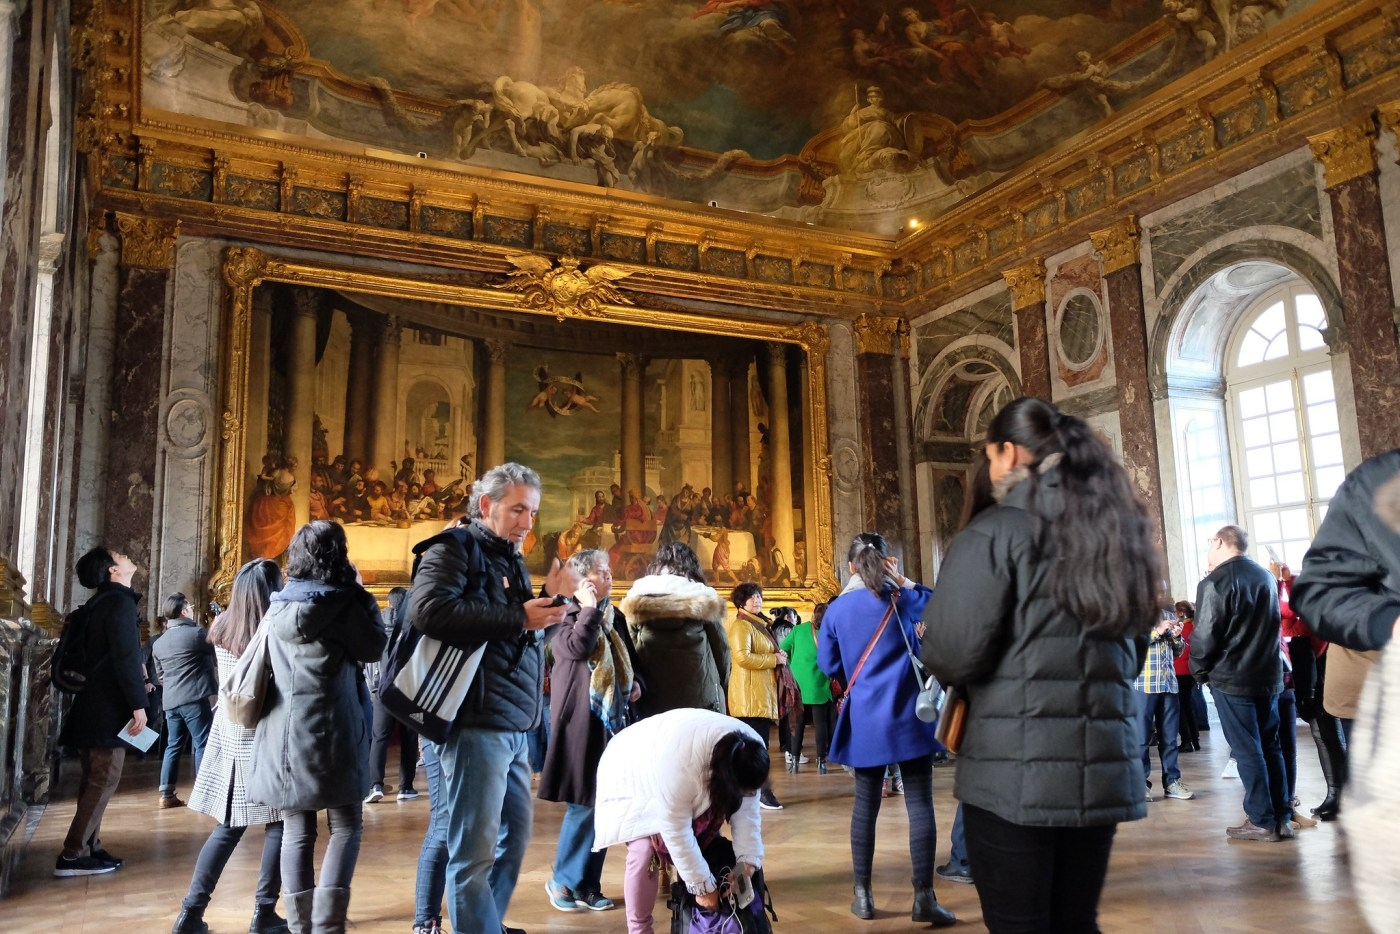 Inside Palace of Versailles